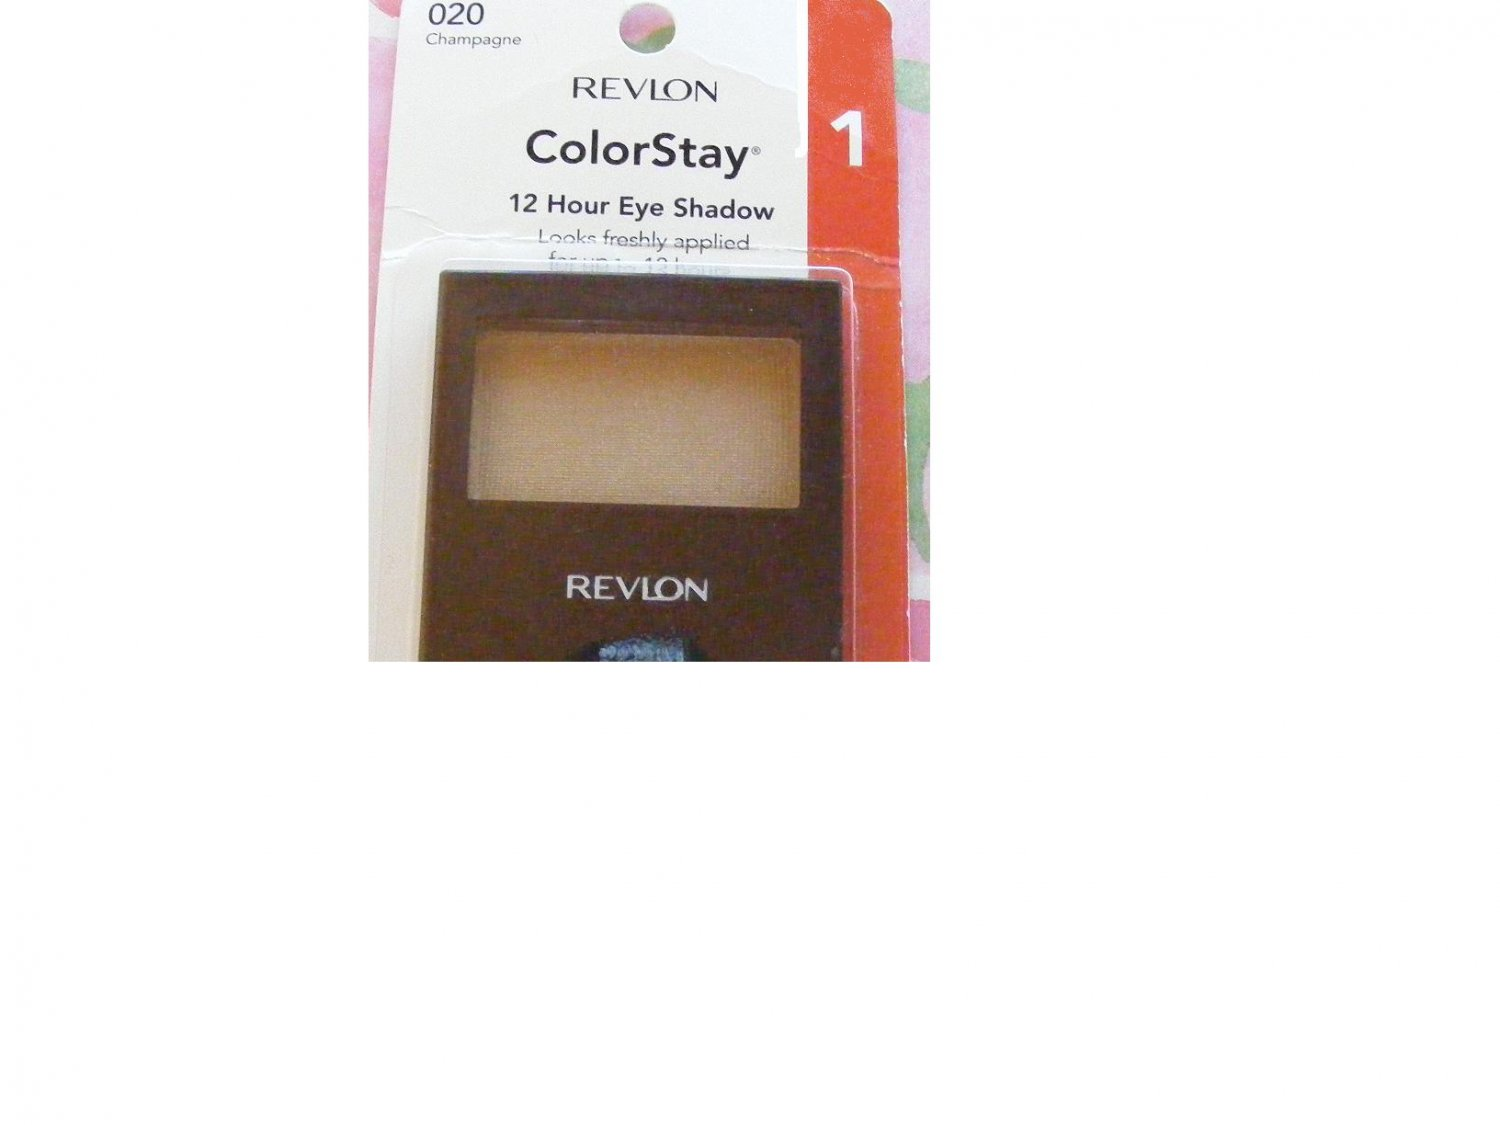 Revlon Colorstay Eyeshadow Champagne 020 with SoftFlex